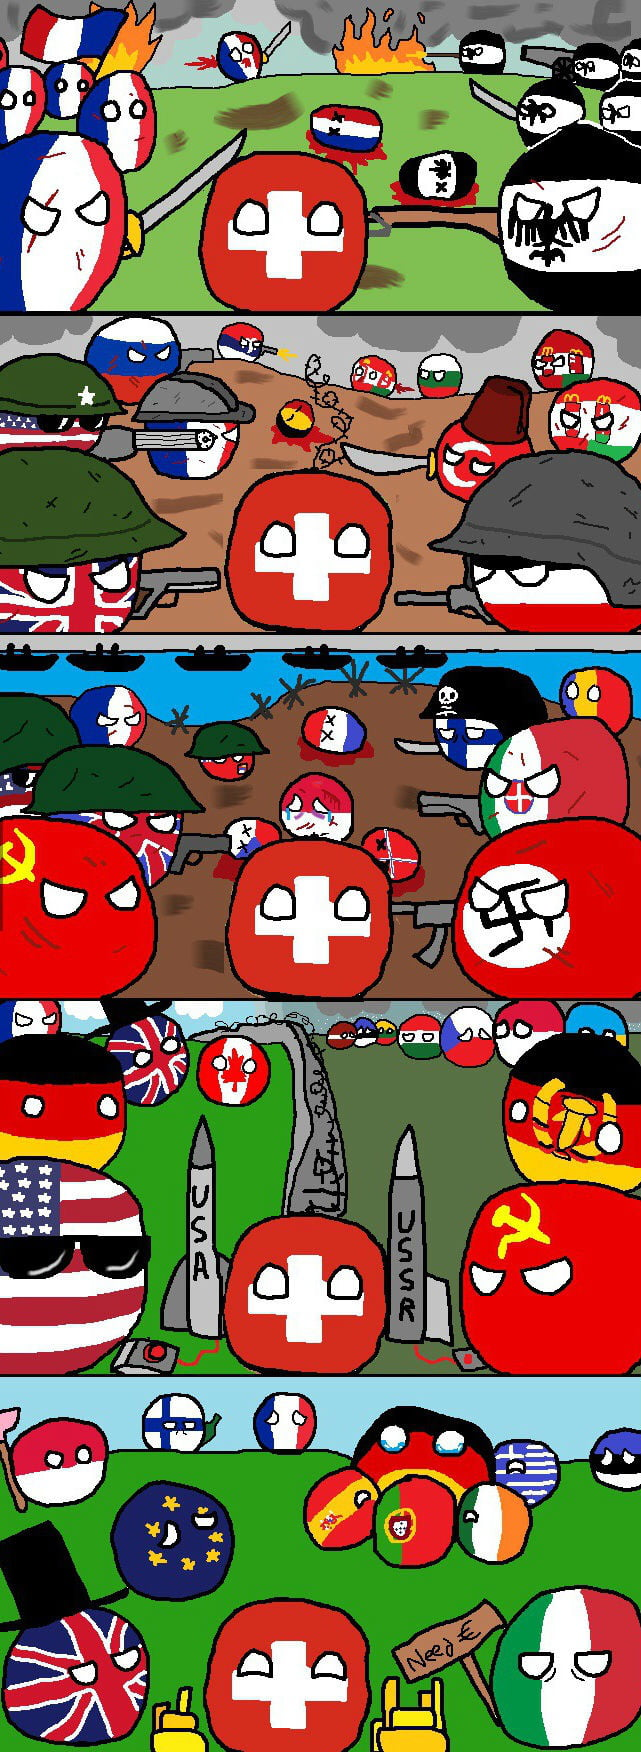 The neutrality of Switzerland